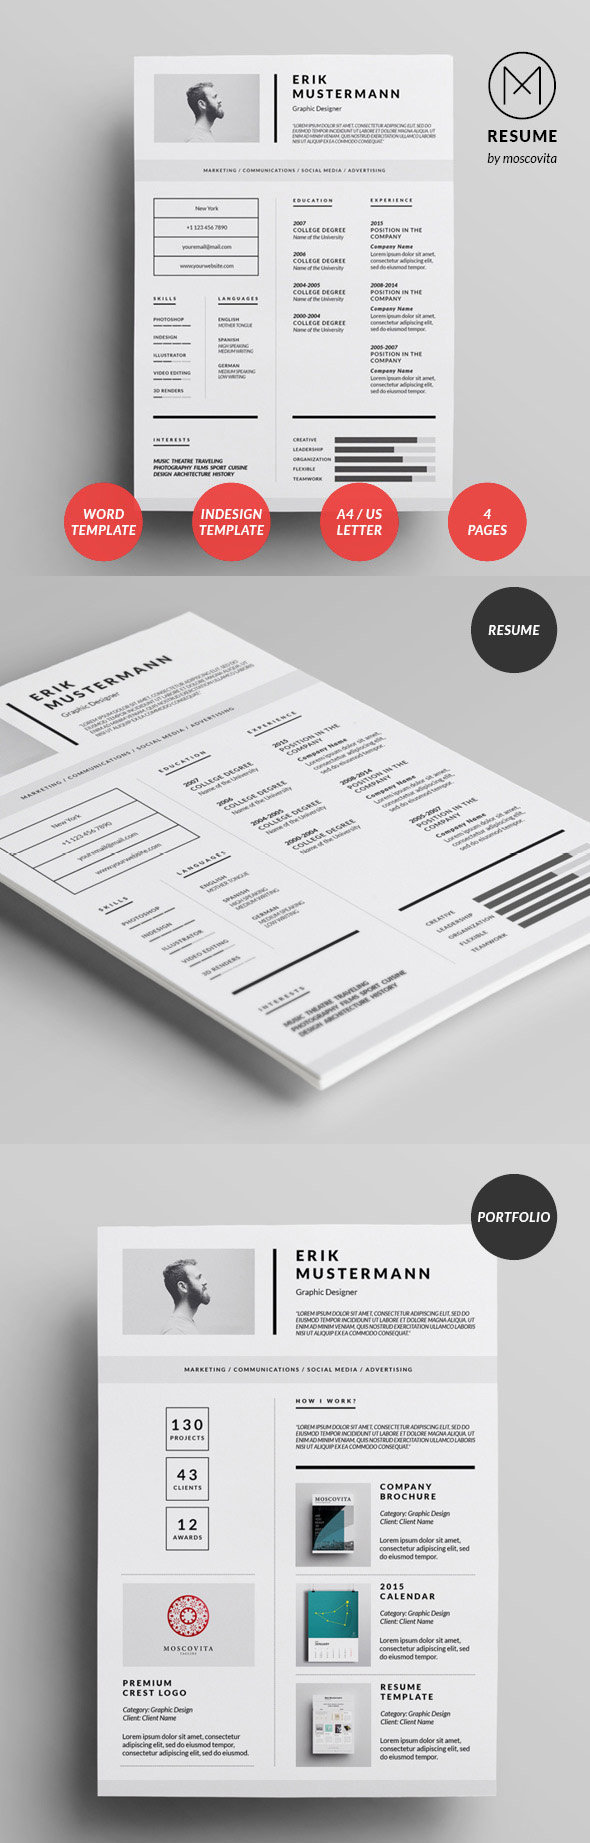 Best Cv  Resume Templates With Cover Letter  Mixed Sign